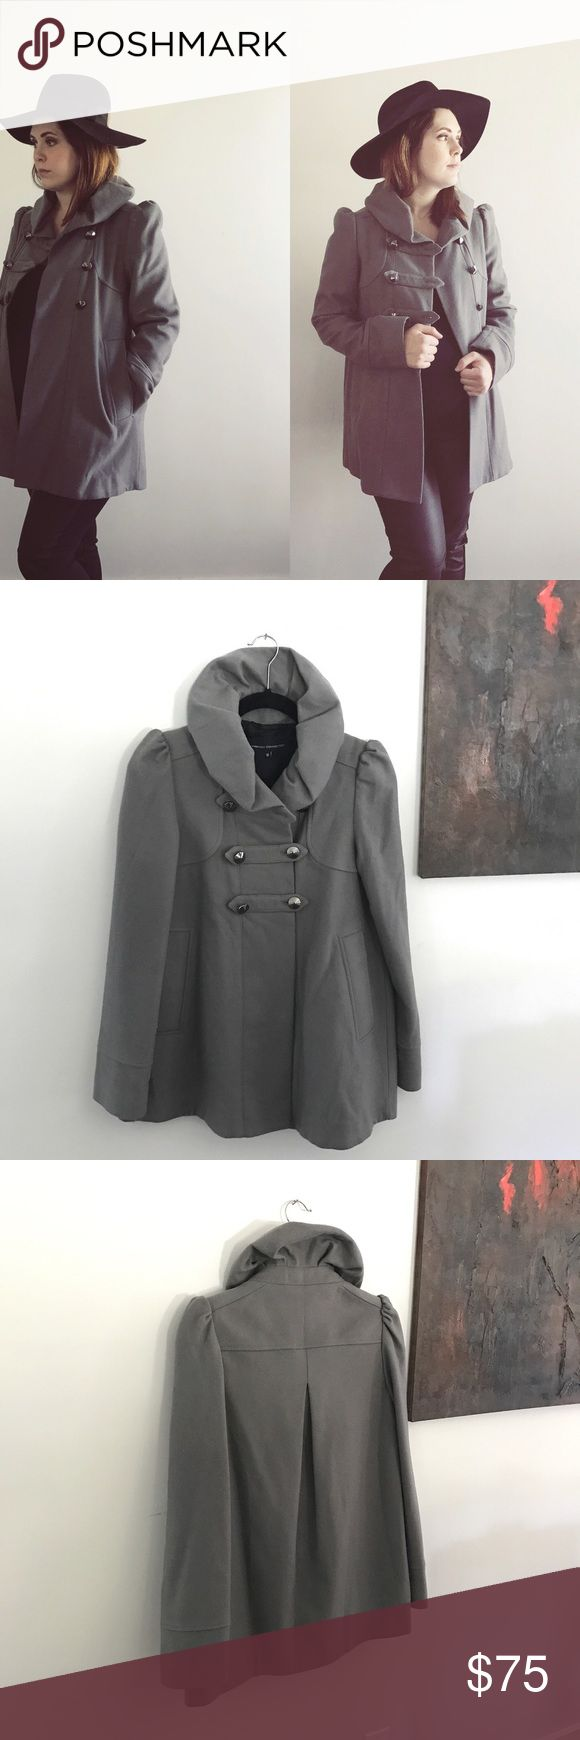 "▫️French Connection Gray Wool Coat▫️ ➕FC coats range anywhere from $200 up to $360+ 👉🏼so the listed price here is firm👈🏼 ➕No visible wear//gently worn for one season ➕Double-breasted A-line style ➕Slightly Oversized ➕Purchased via ASOS ➕Cap sleeves ➕Military-inspired style  Product Details  ➕Shoulder to hem 28.5"" ➕Across bust 18"" ➕Shell: 80% virgin wool//20% polyamide/nylon ➕Lining: 100% acetate ➕Dry clean only ASOS Jackets & Coats Pea Coats"